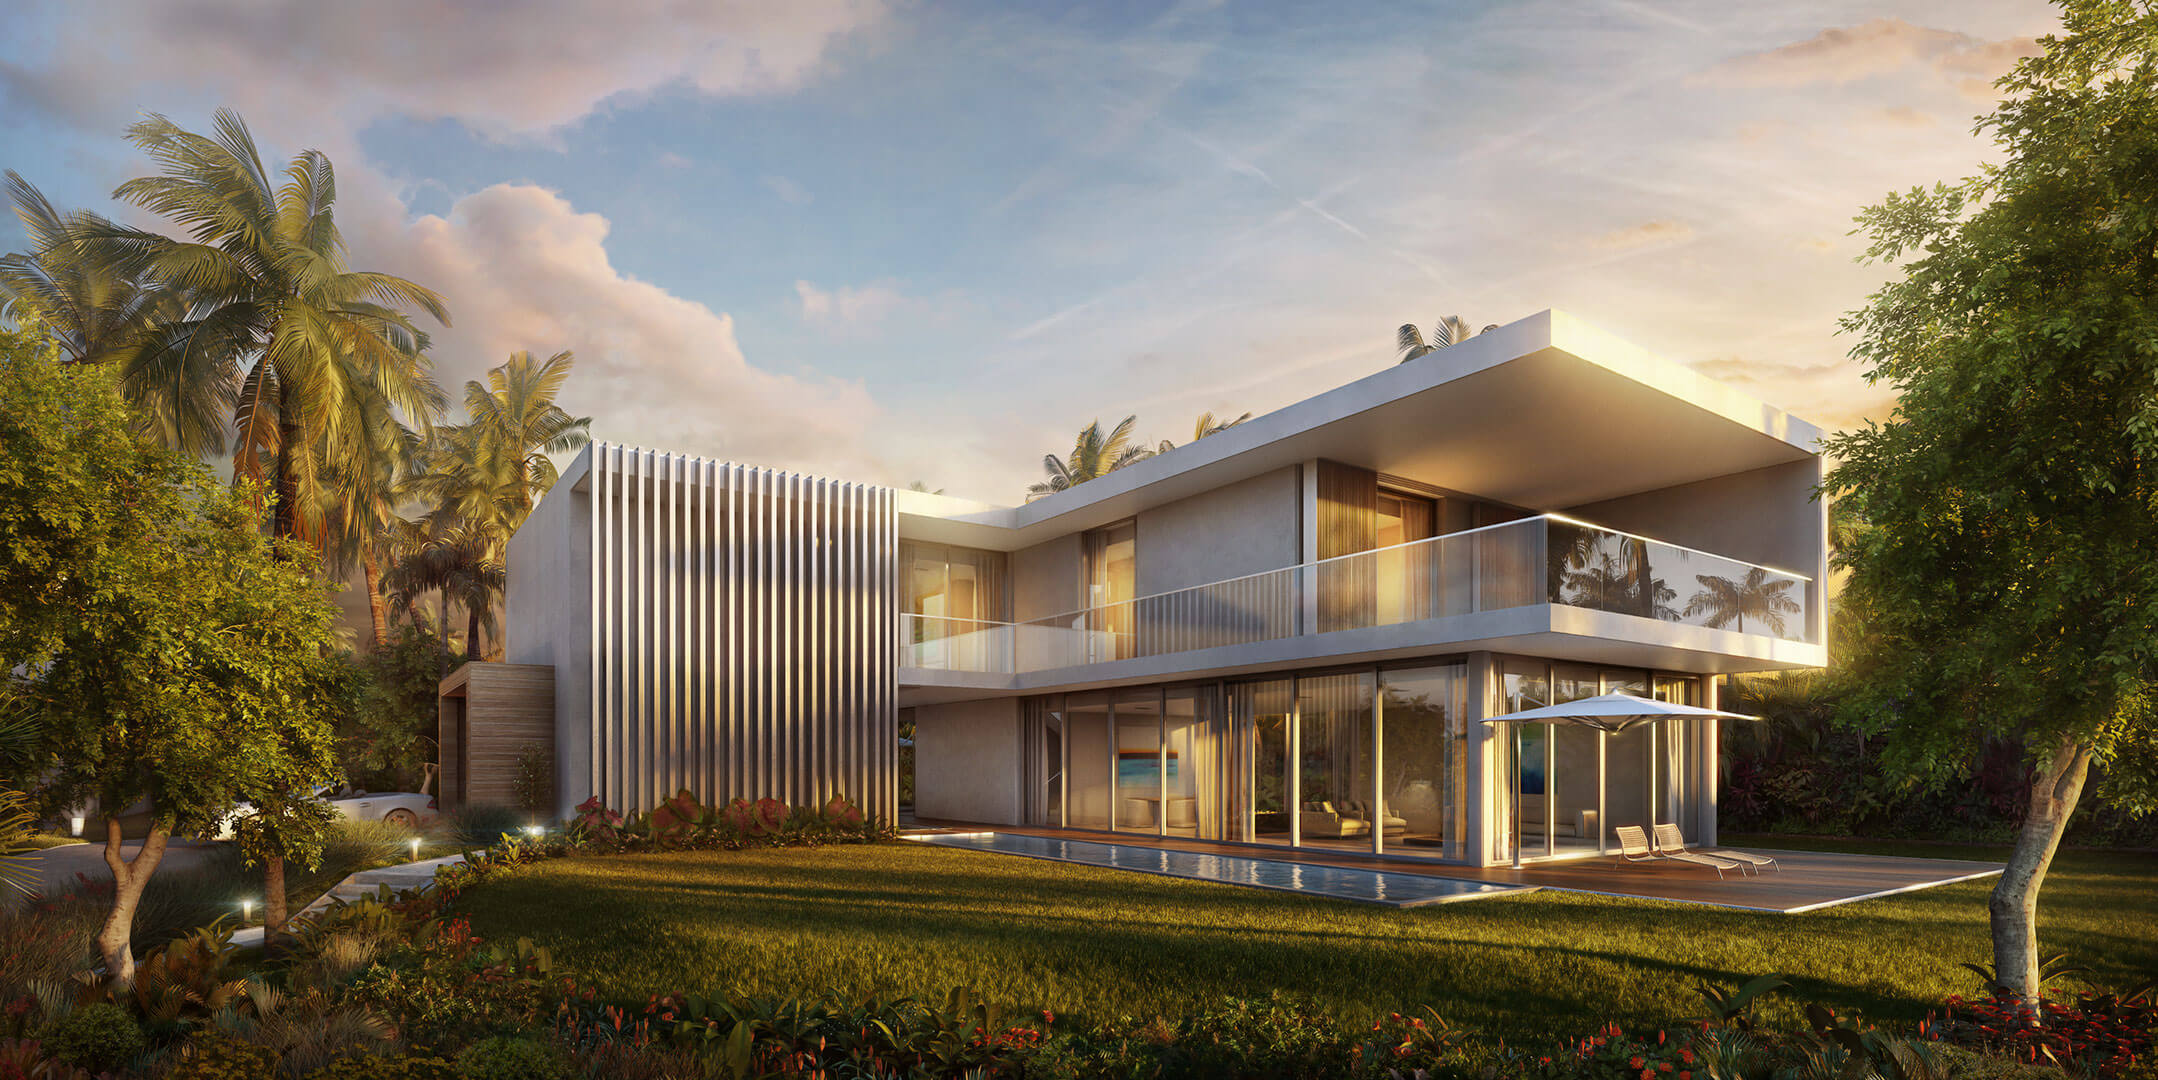 The Ritz-Carlton Residences, Miami Beach Villa